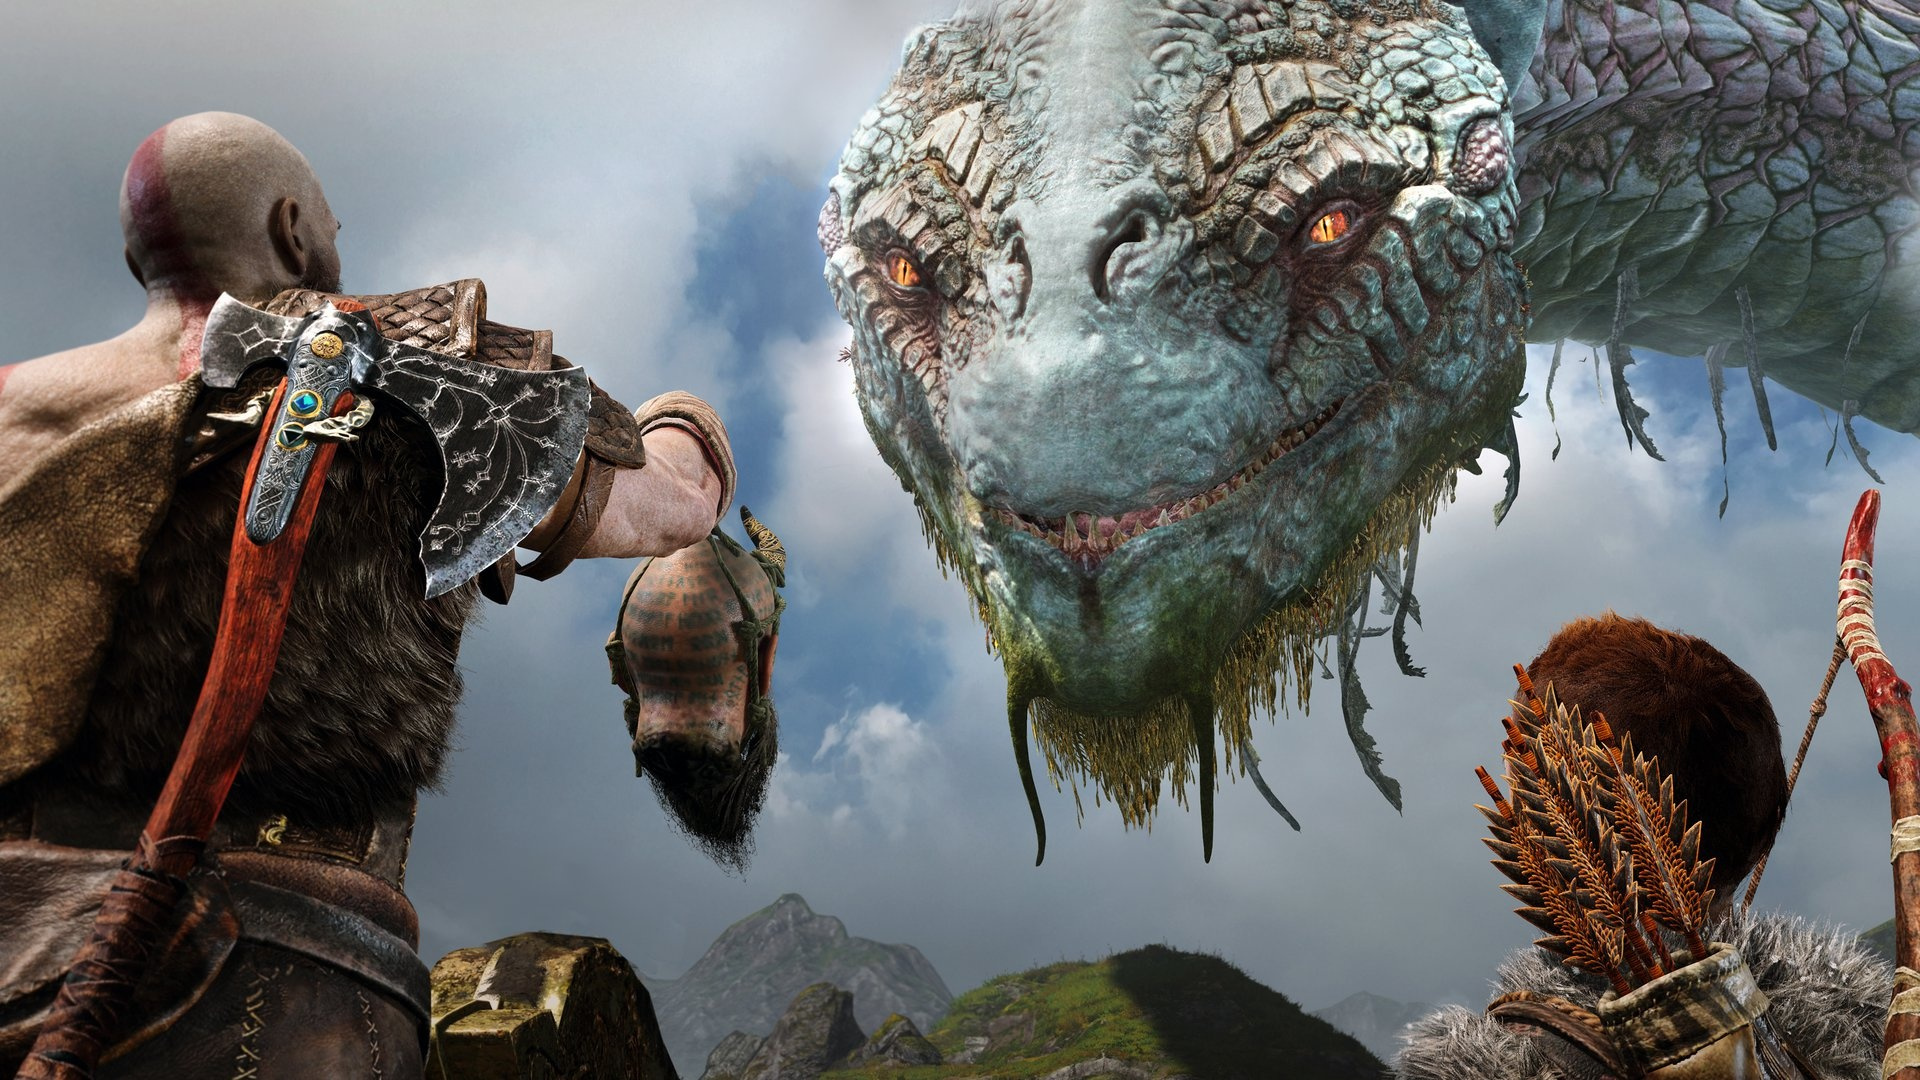 God of War PS4 Director Says Plan for DLC Was 'Too Ambitious